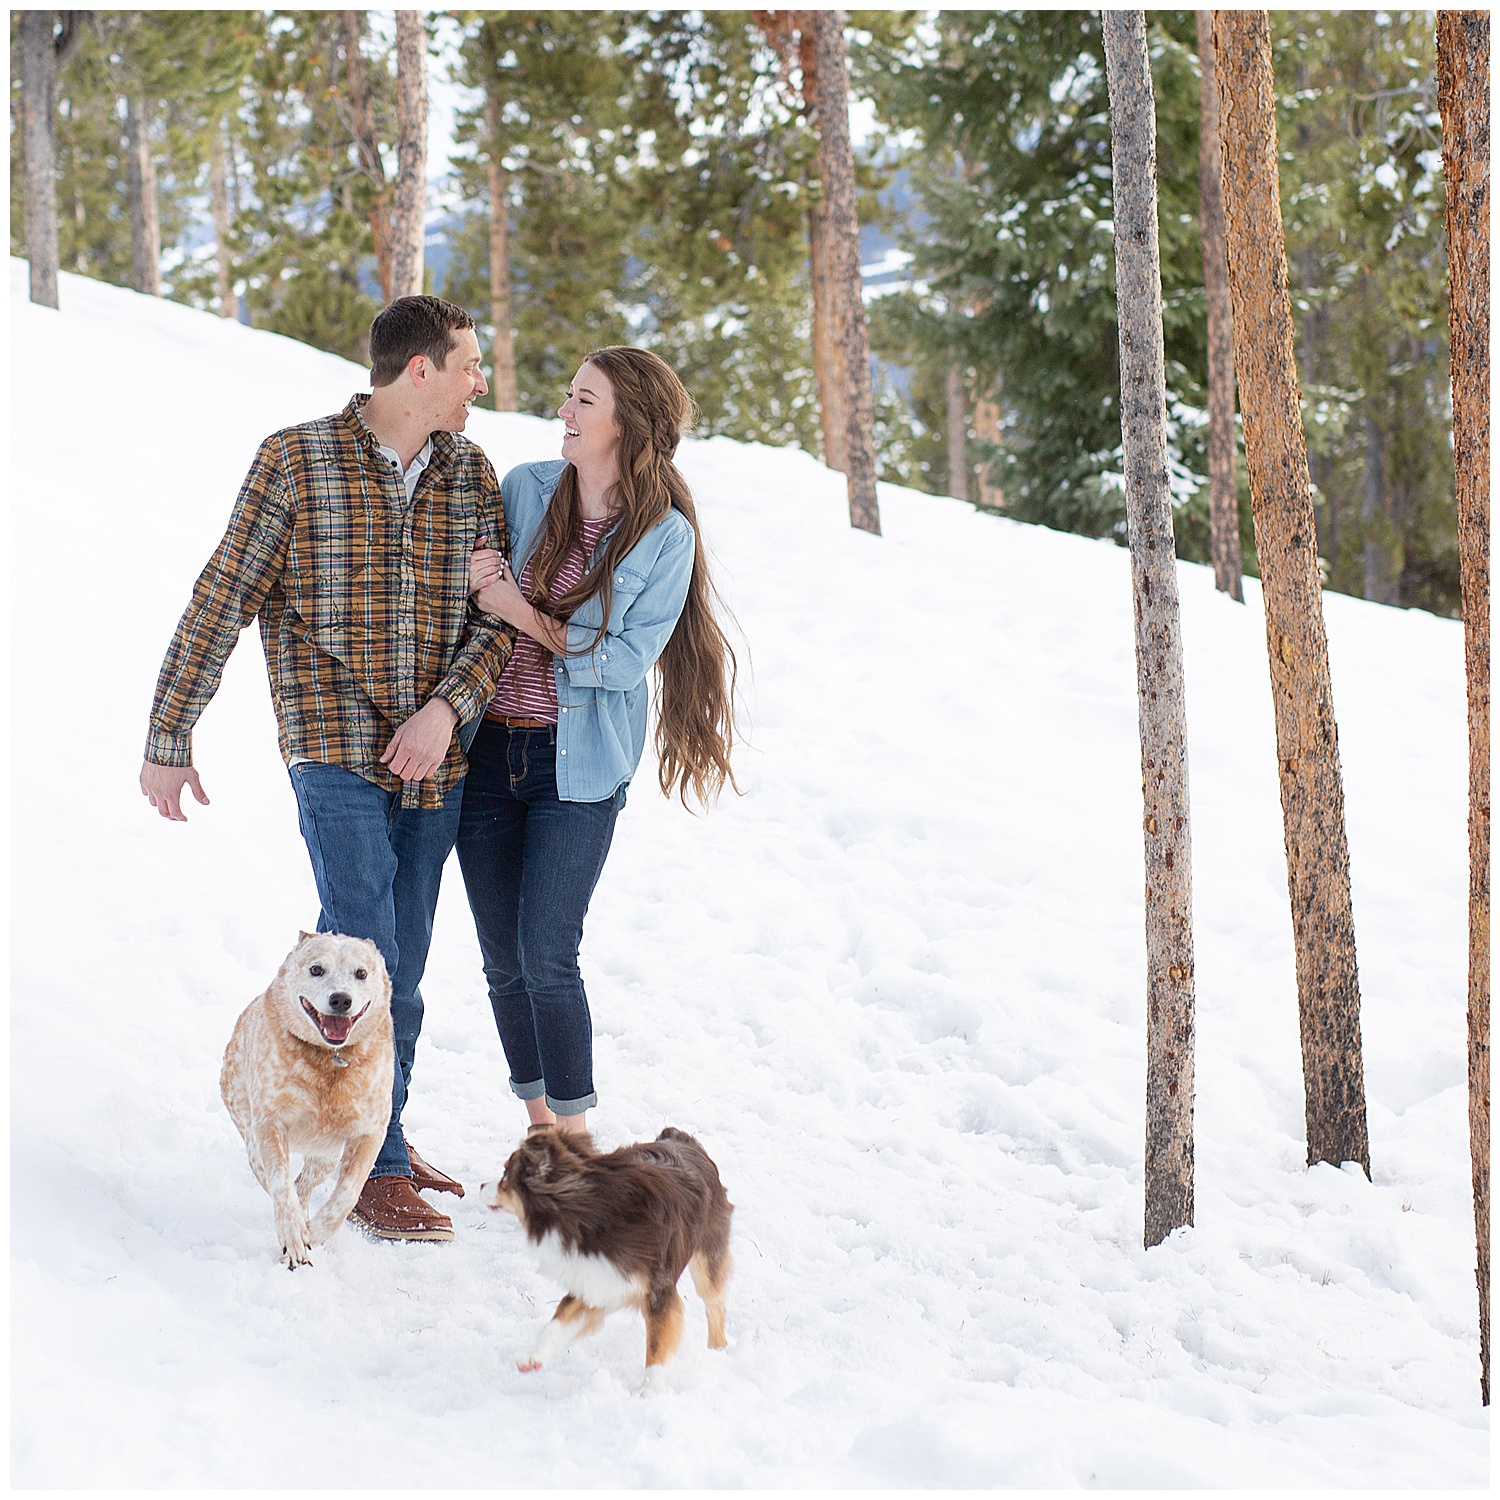 Winter-Breckenridge-Colorado-Engagement-Session_0007.jpg